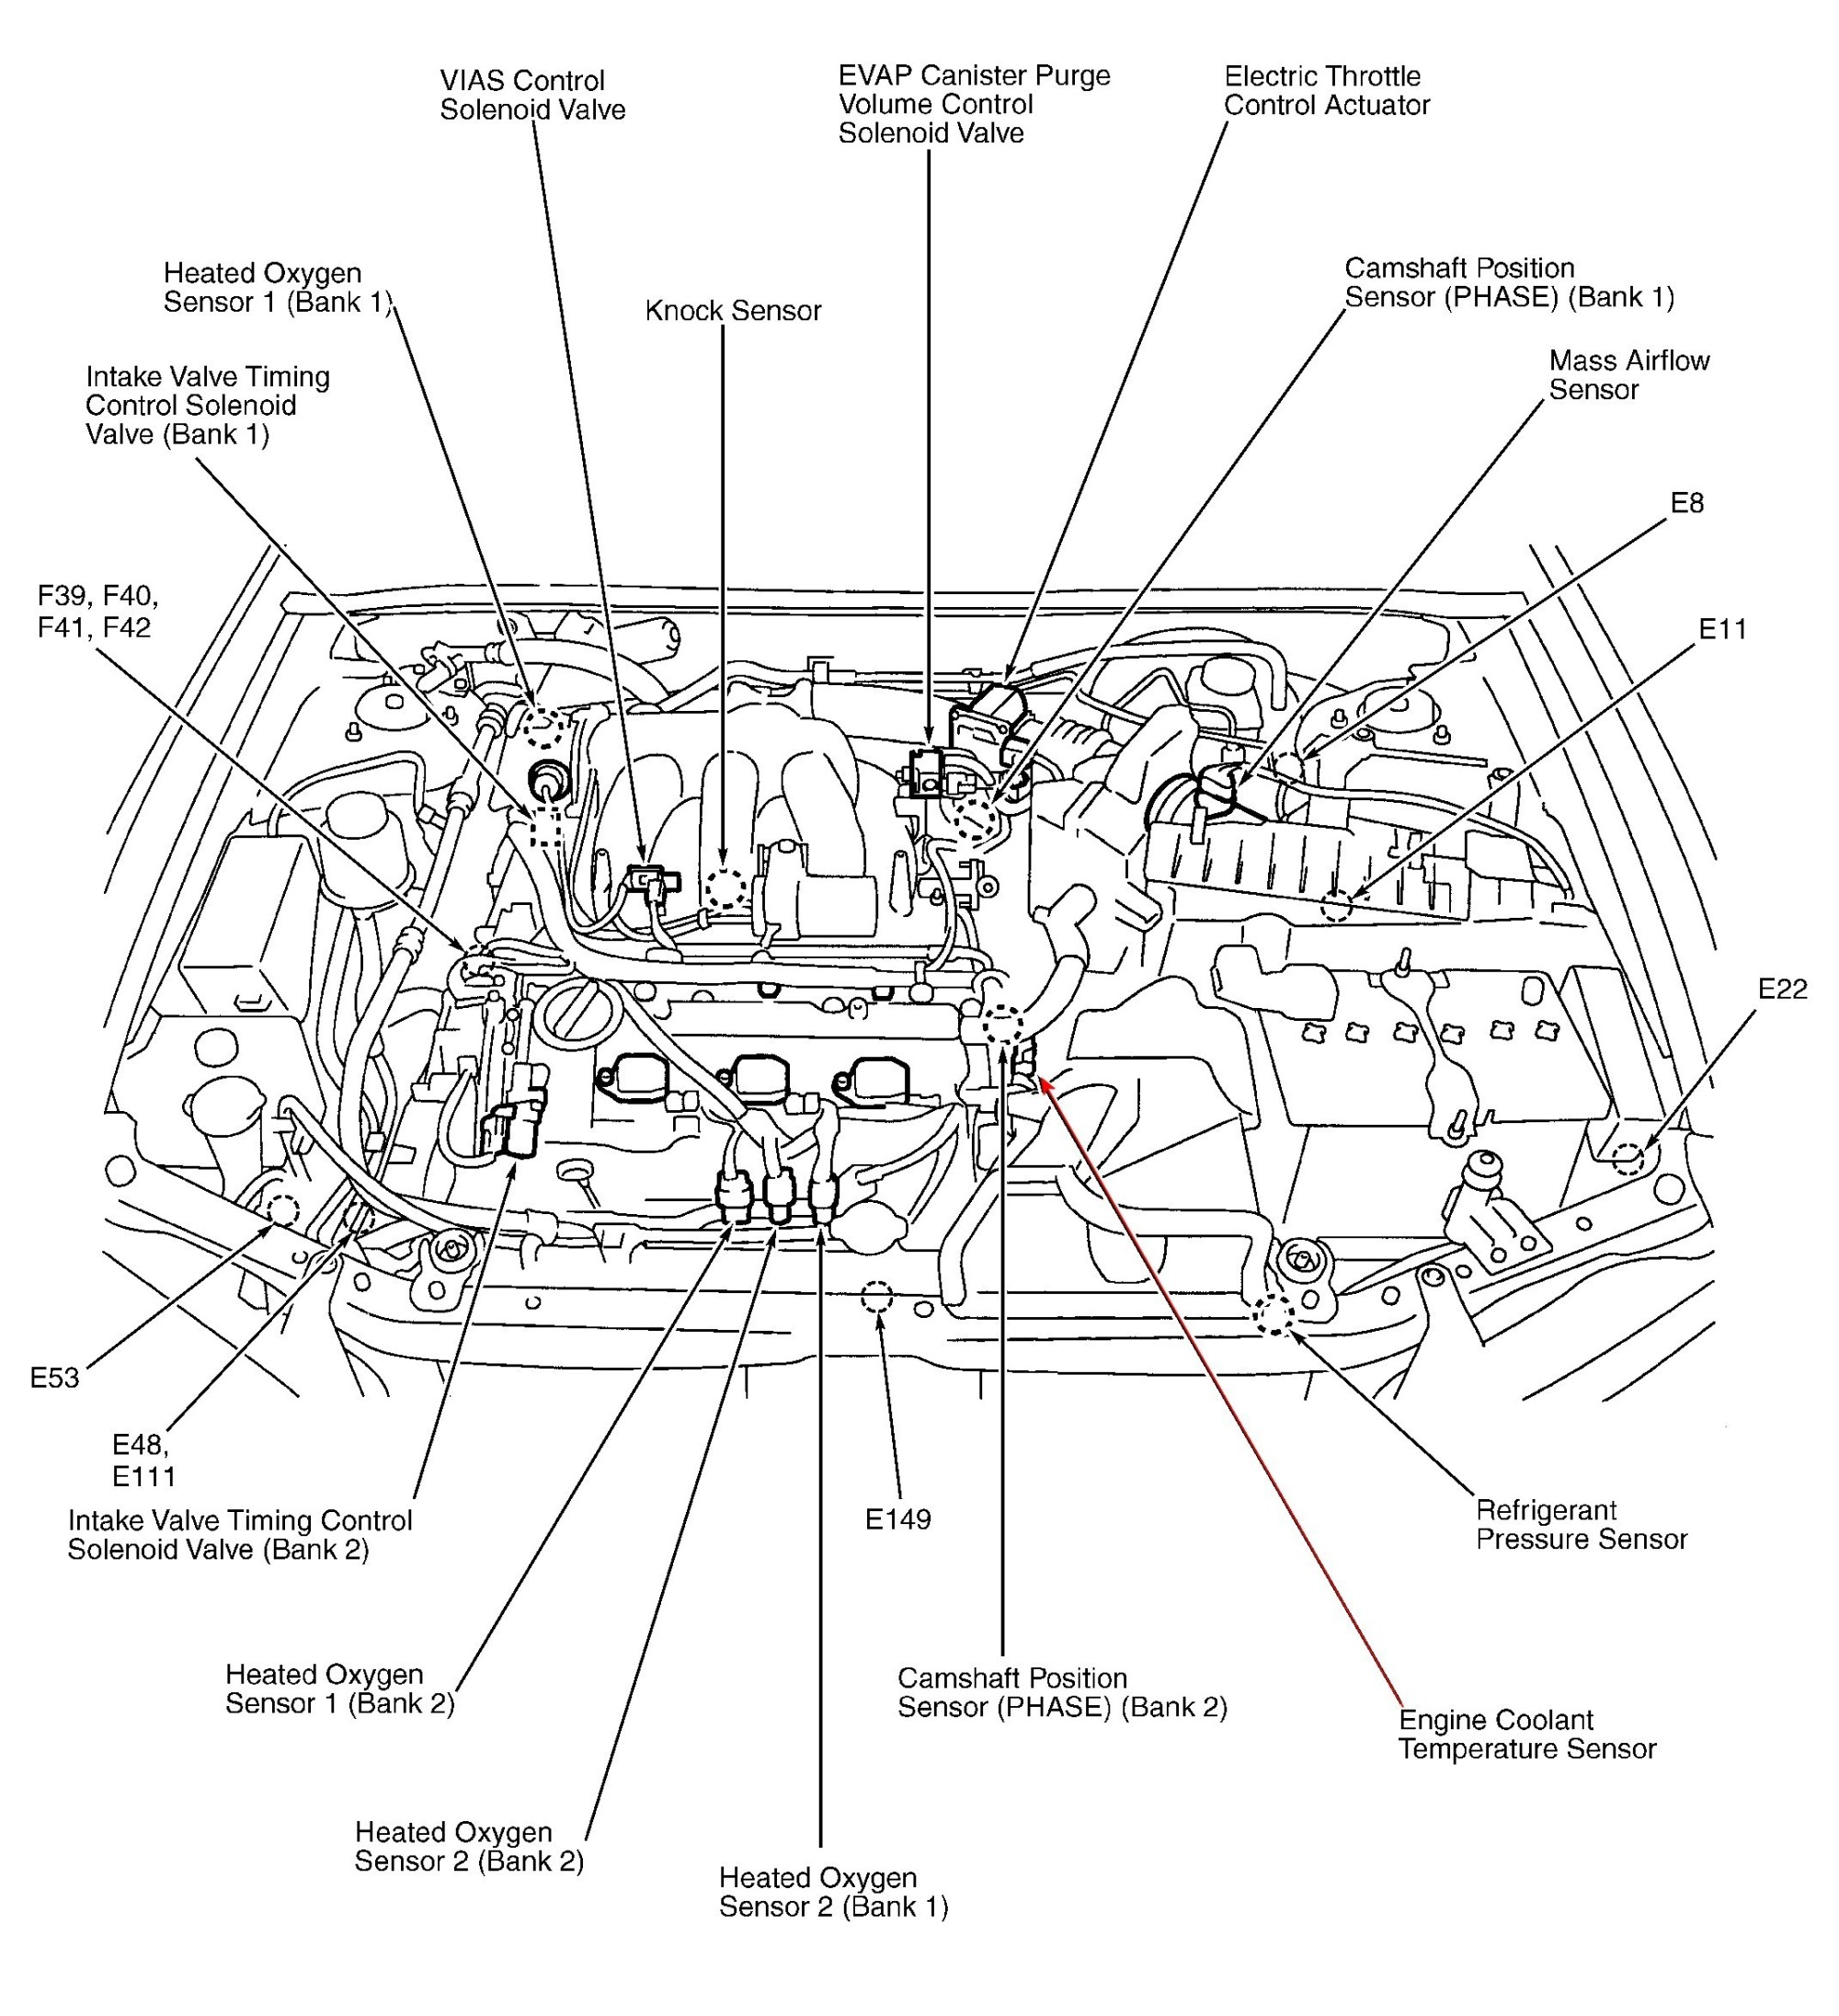 hight resolution of engine hose diagram wiring diagram toolbox 2001 vw passat engine hose diagram engine hose diagram